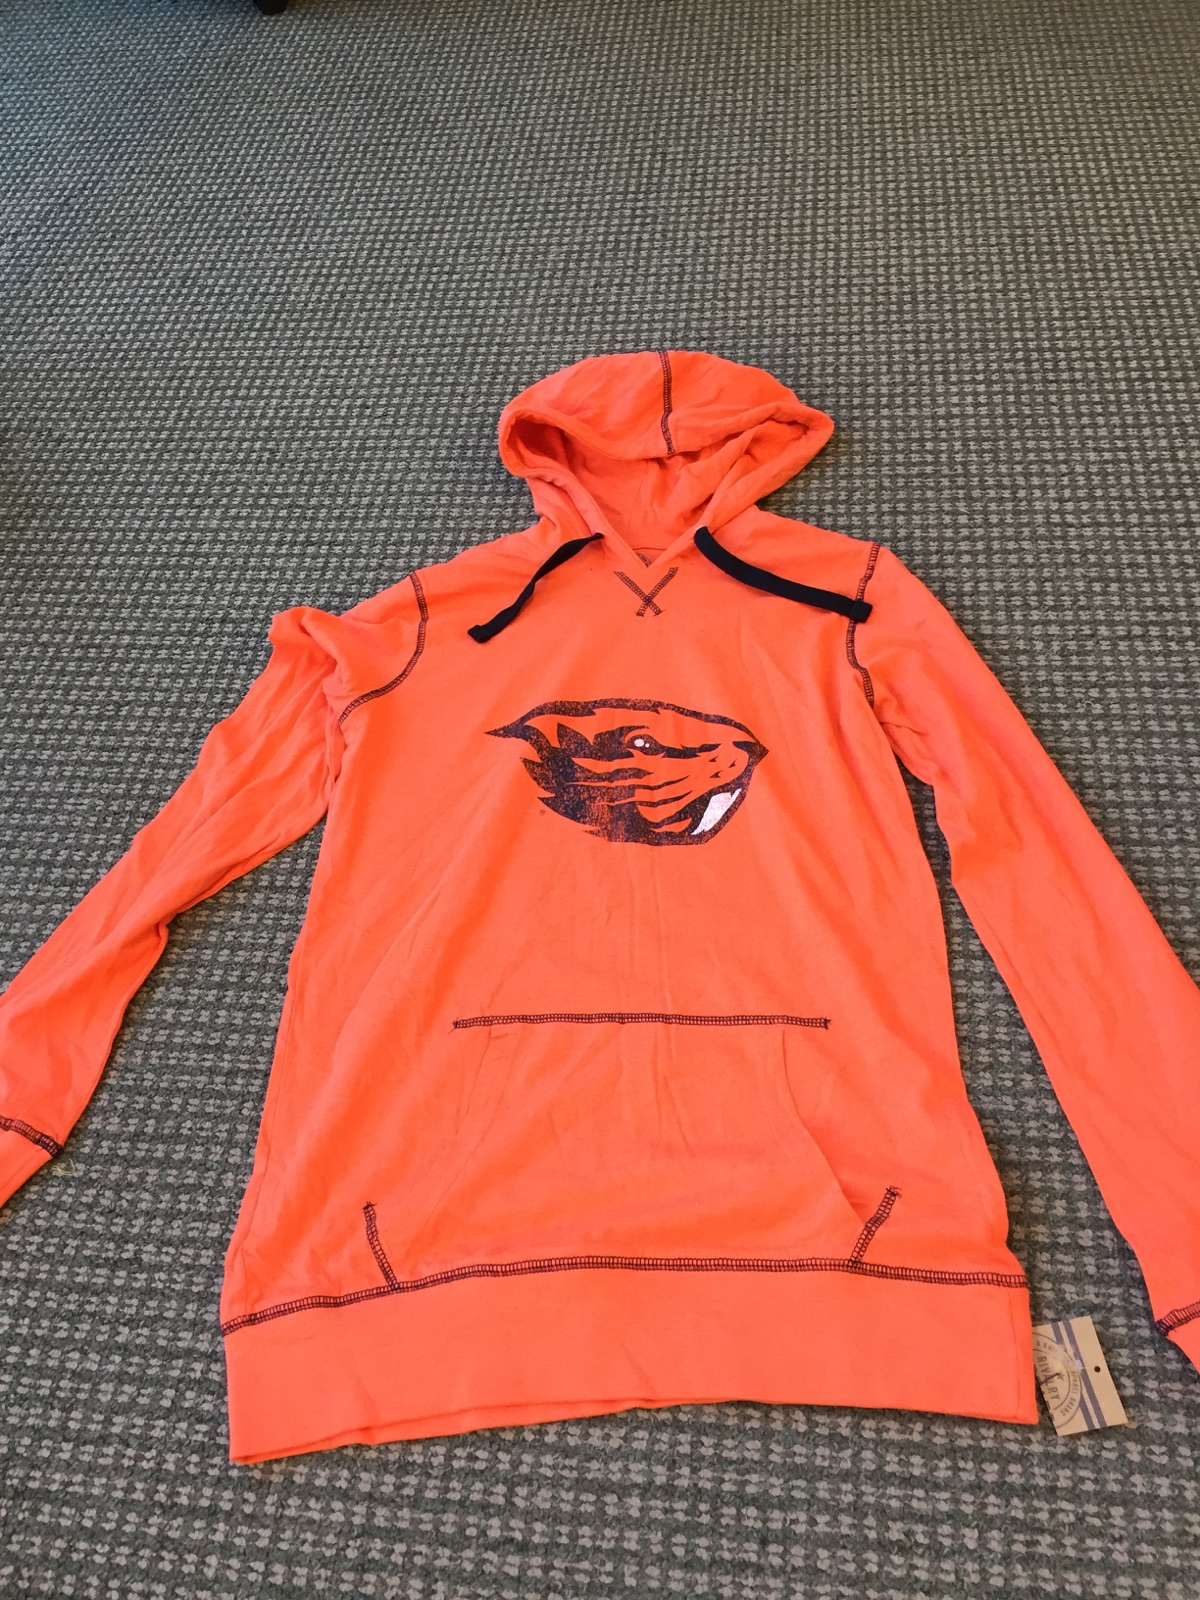 Oregon State Hoodie Lightweight Size Large